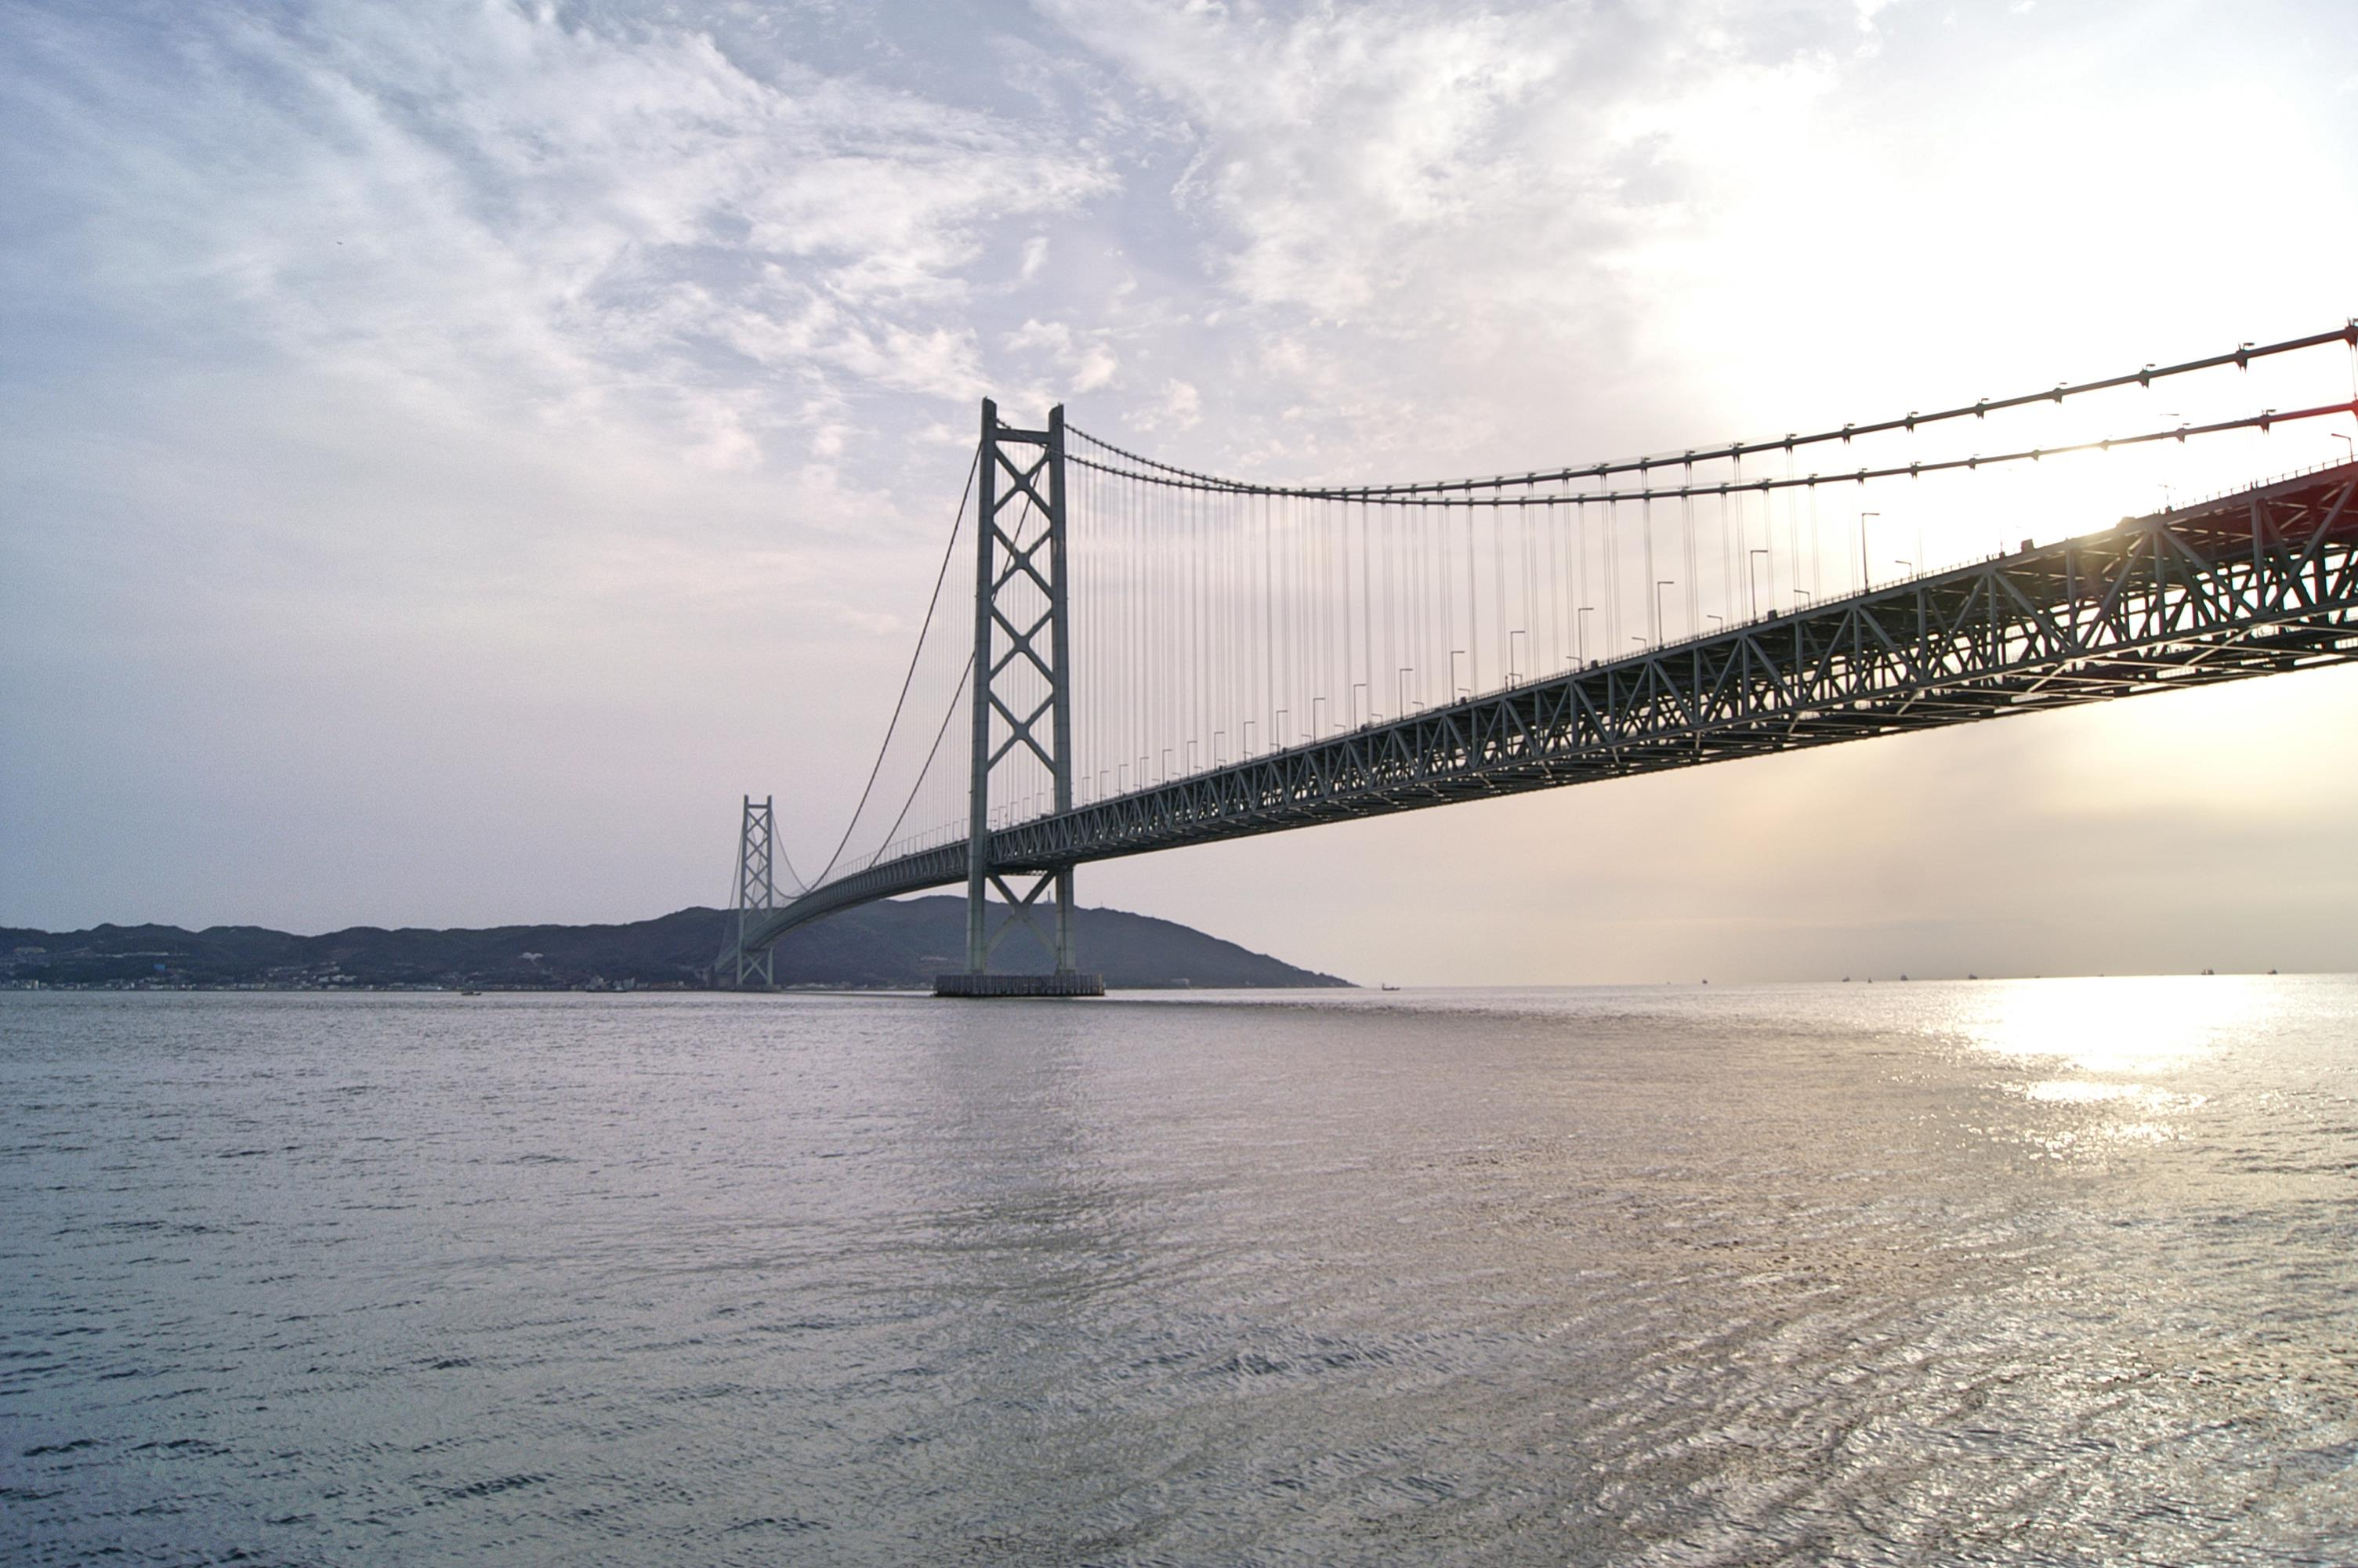 Akashi Kaikyo Ōhashi Suspension Bridge – 明石海峡大橋